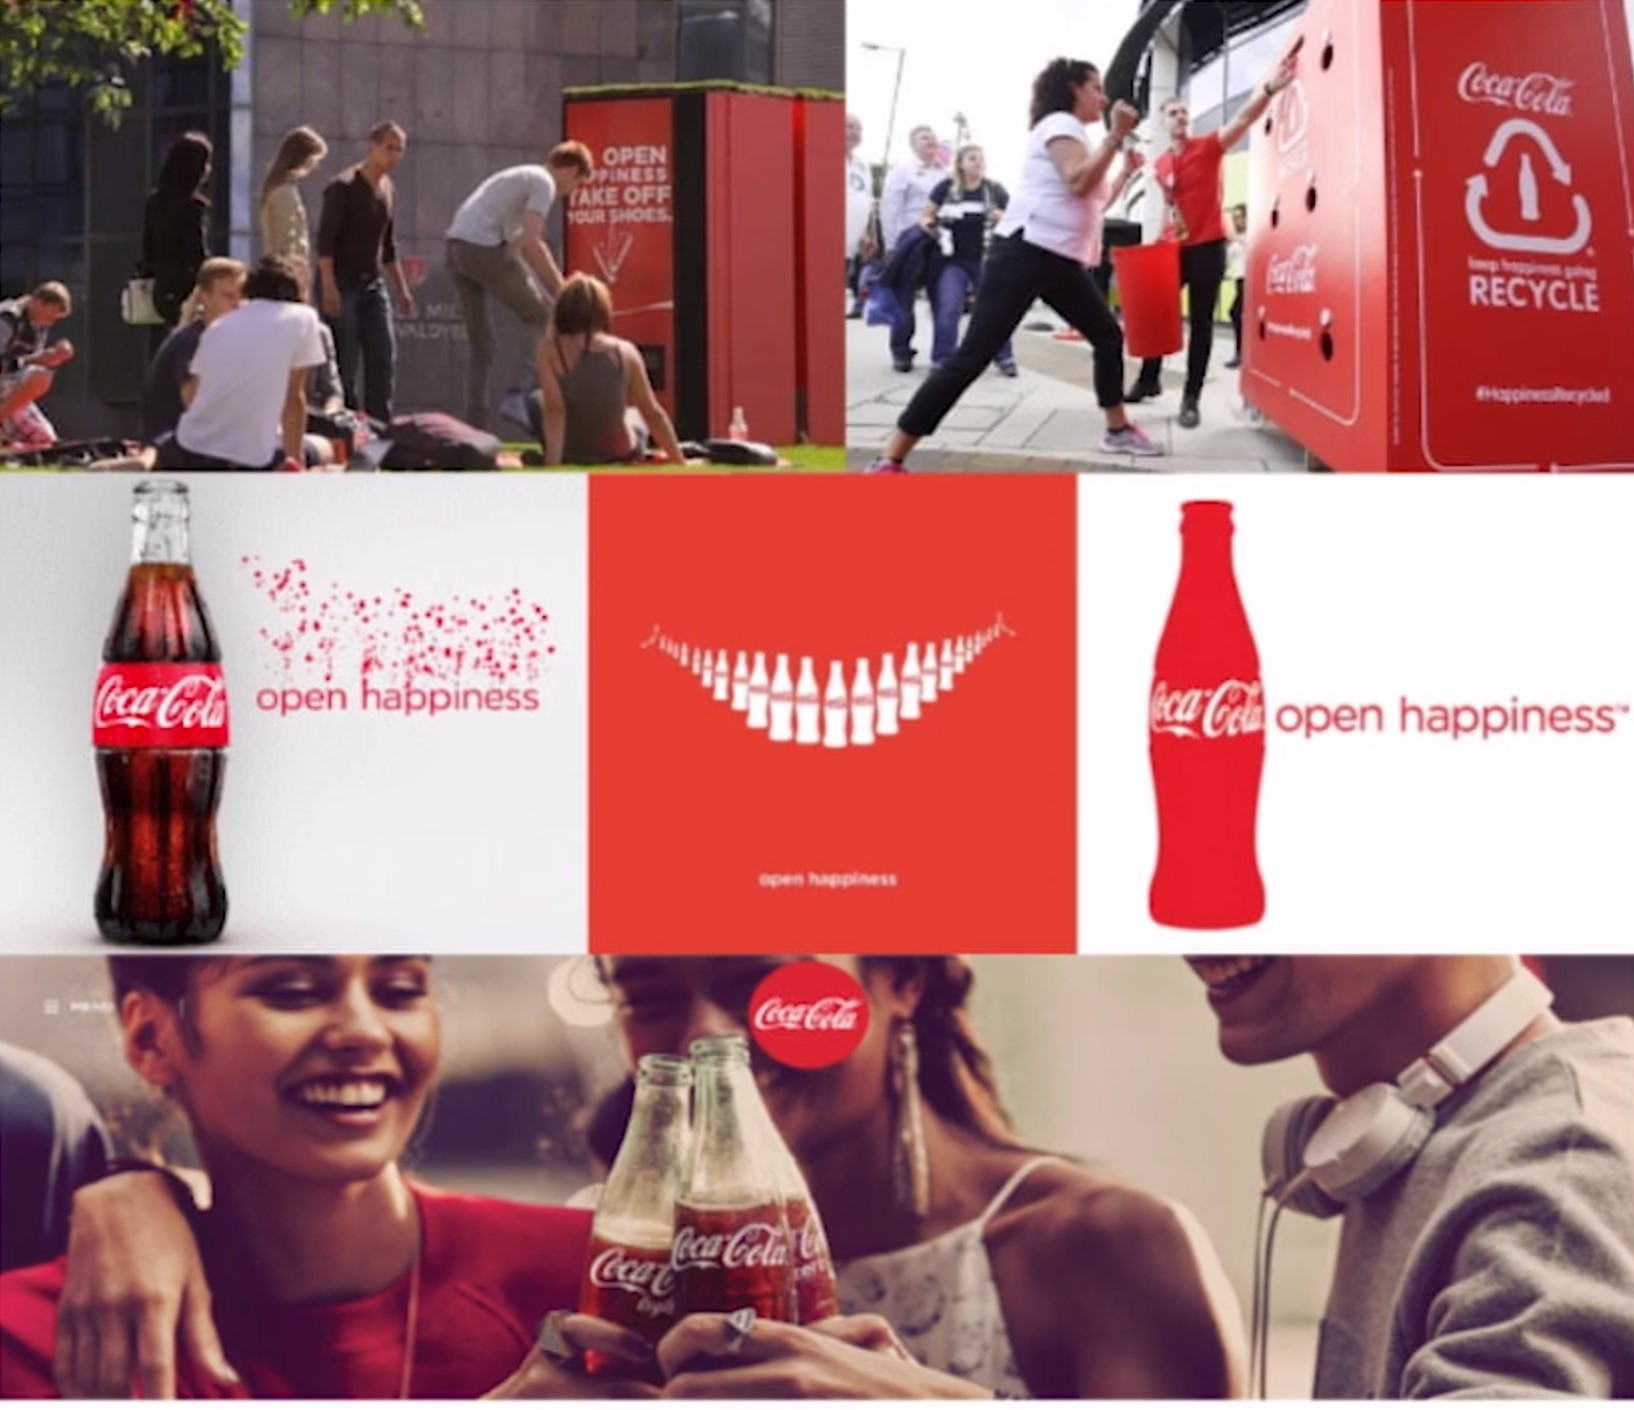 GLS Group shares Coca-Cola's Open Happiness campaign as an example of a brand with a strong voice